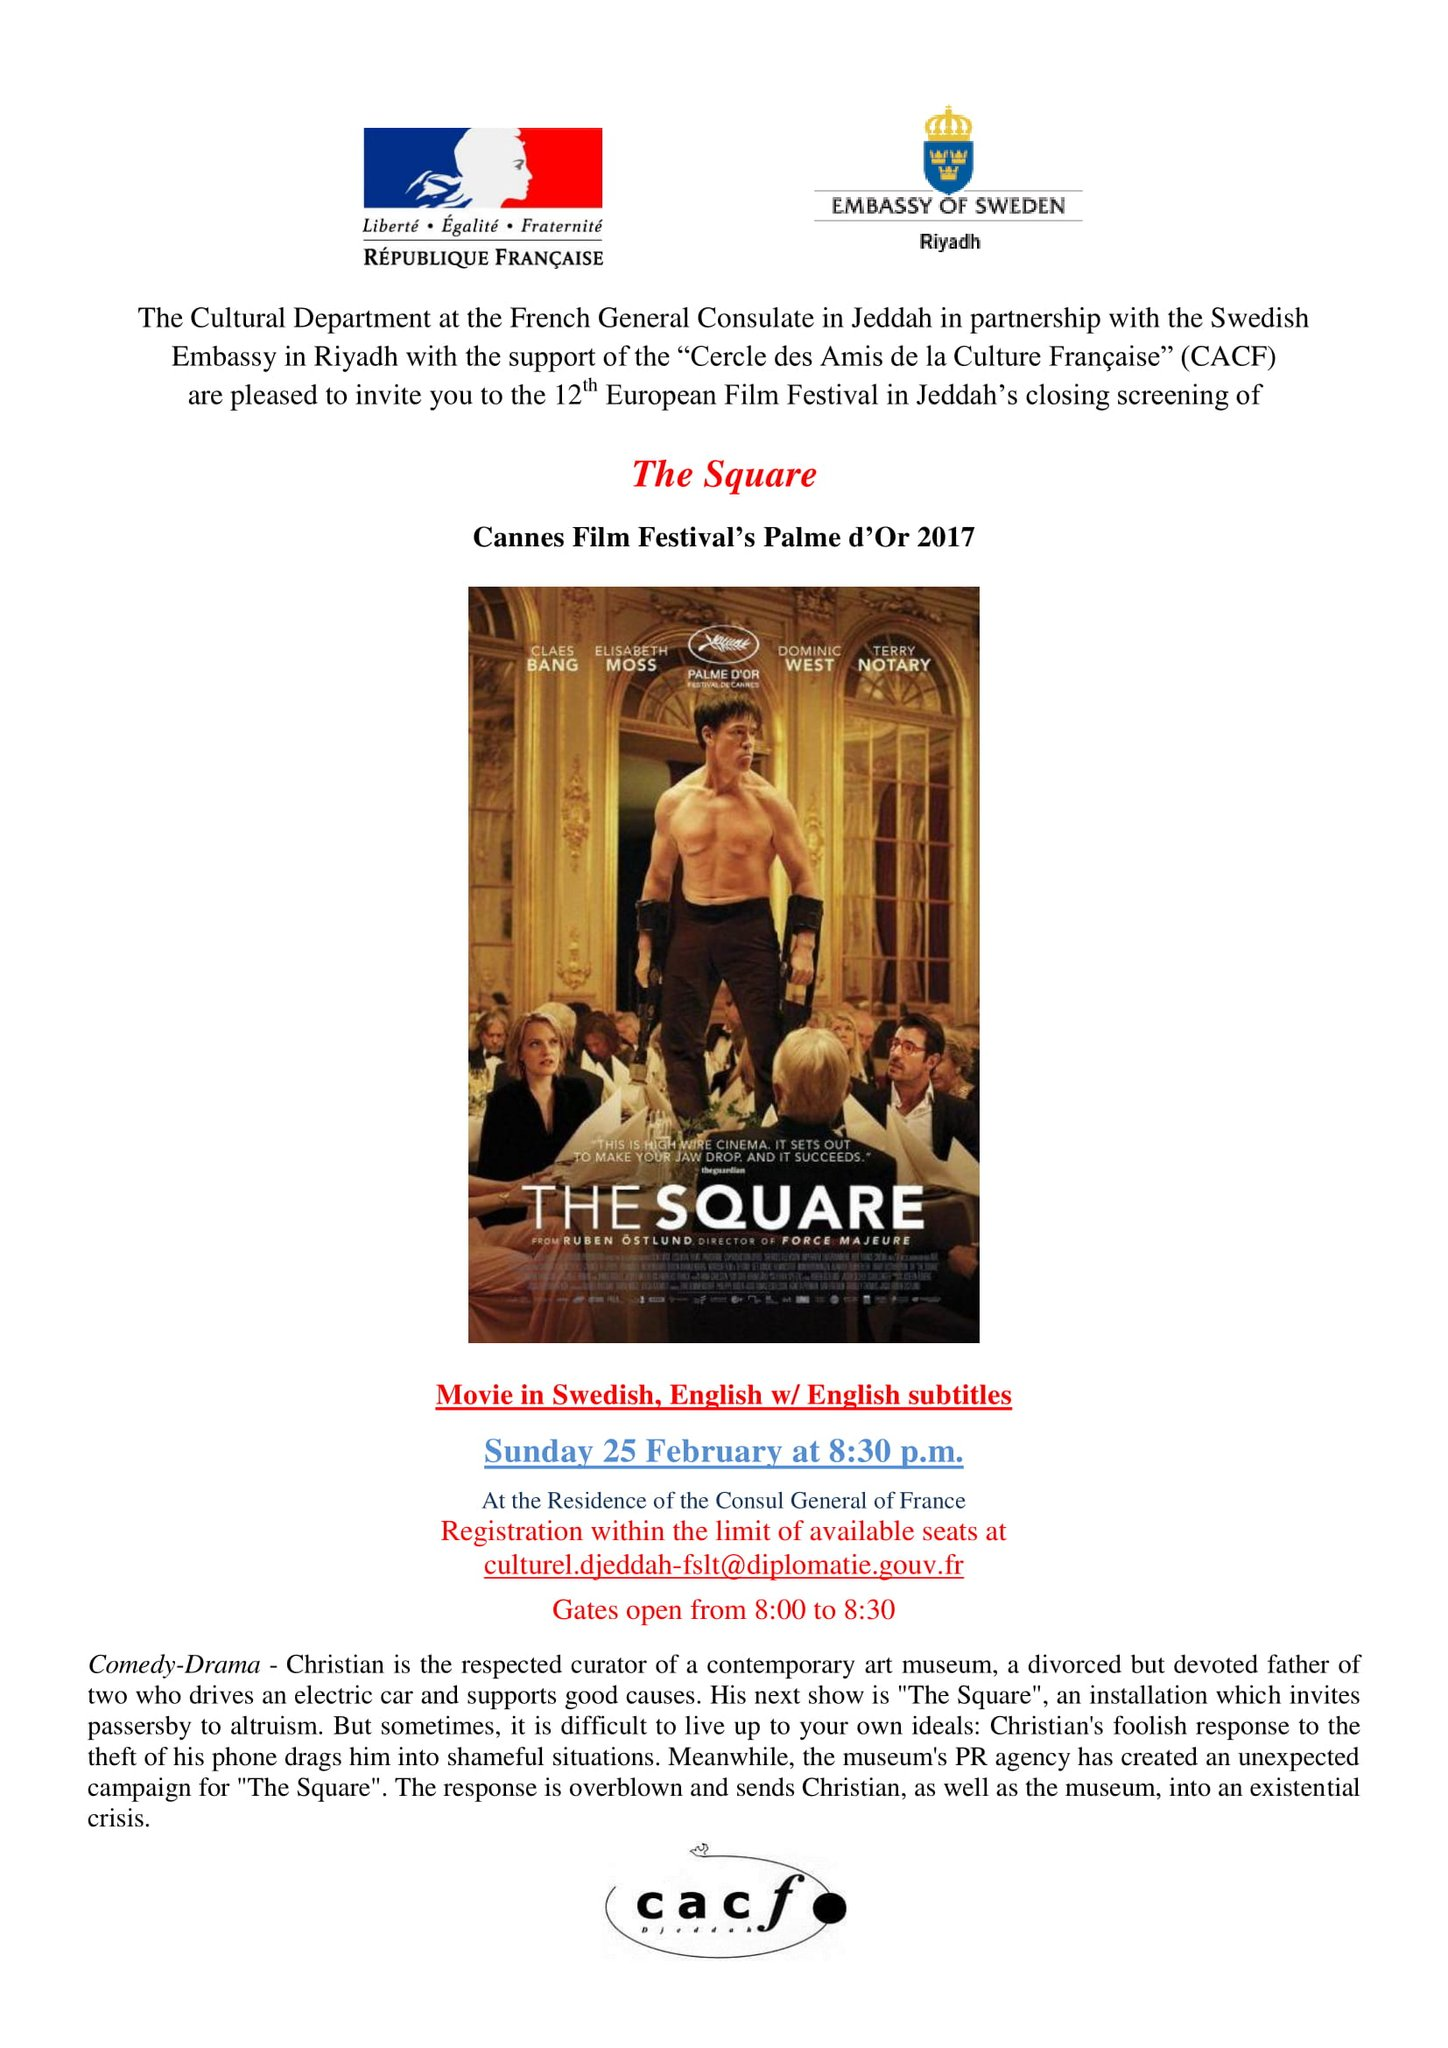 Join us and watch The Square in Jeddah on Sunday! https://t.co/9iGtesLNqN